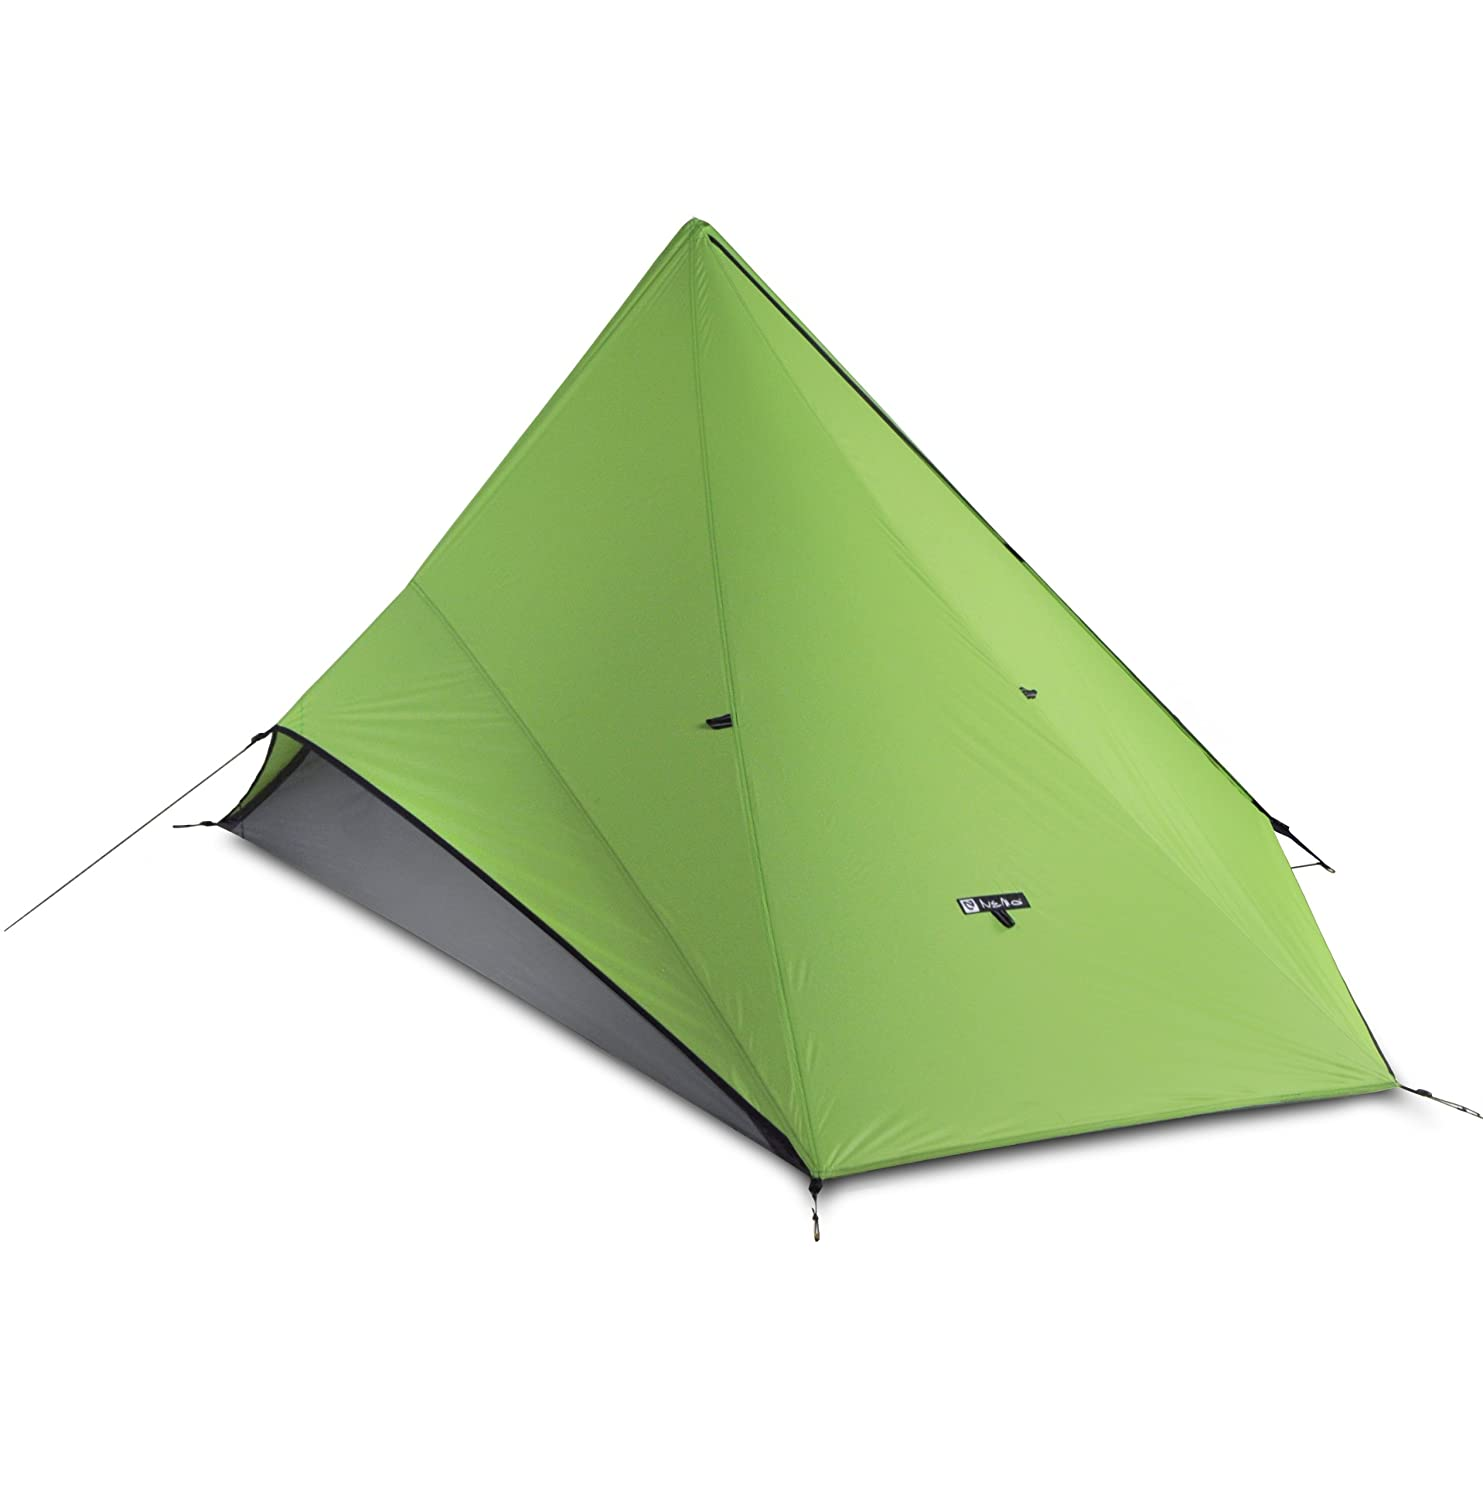 Amazon.com  Nemo Equipment Meta Ultralight Trekking Tent  Backpacking Tents  Sports u0026 Outdoors  sc 1 st  Amazon.com & Amazon.com : Nemo Equipment Meta Ultralight Trekking Tent ...